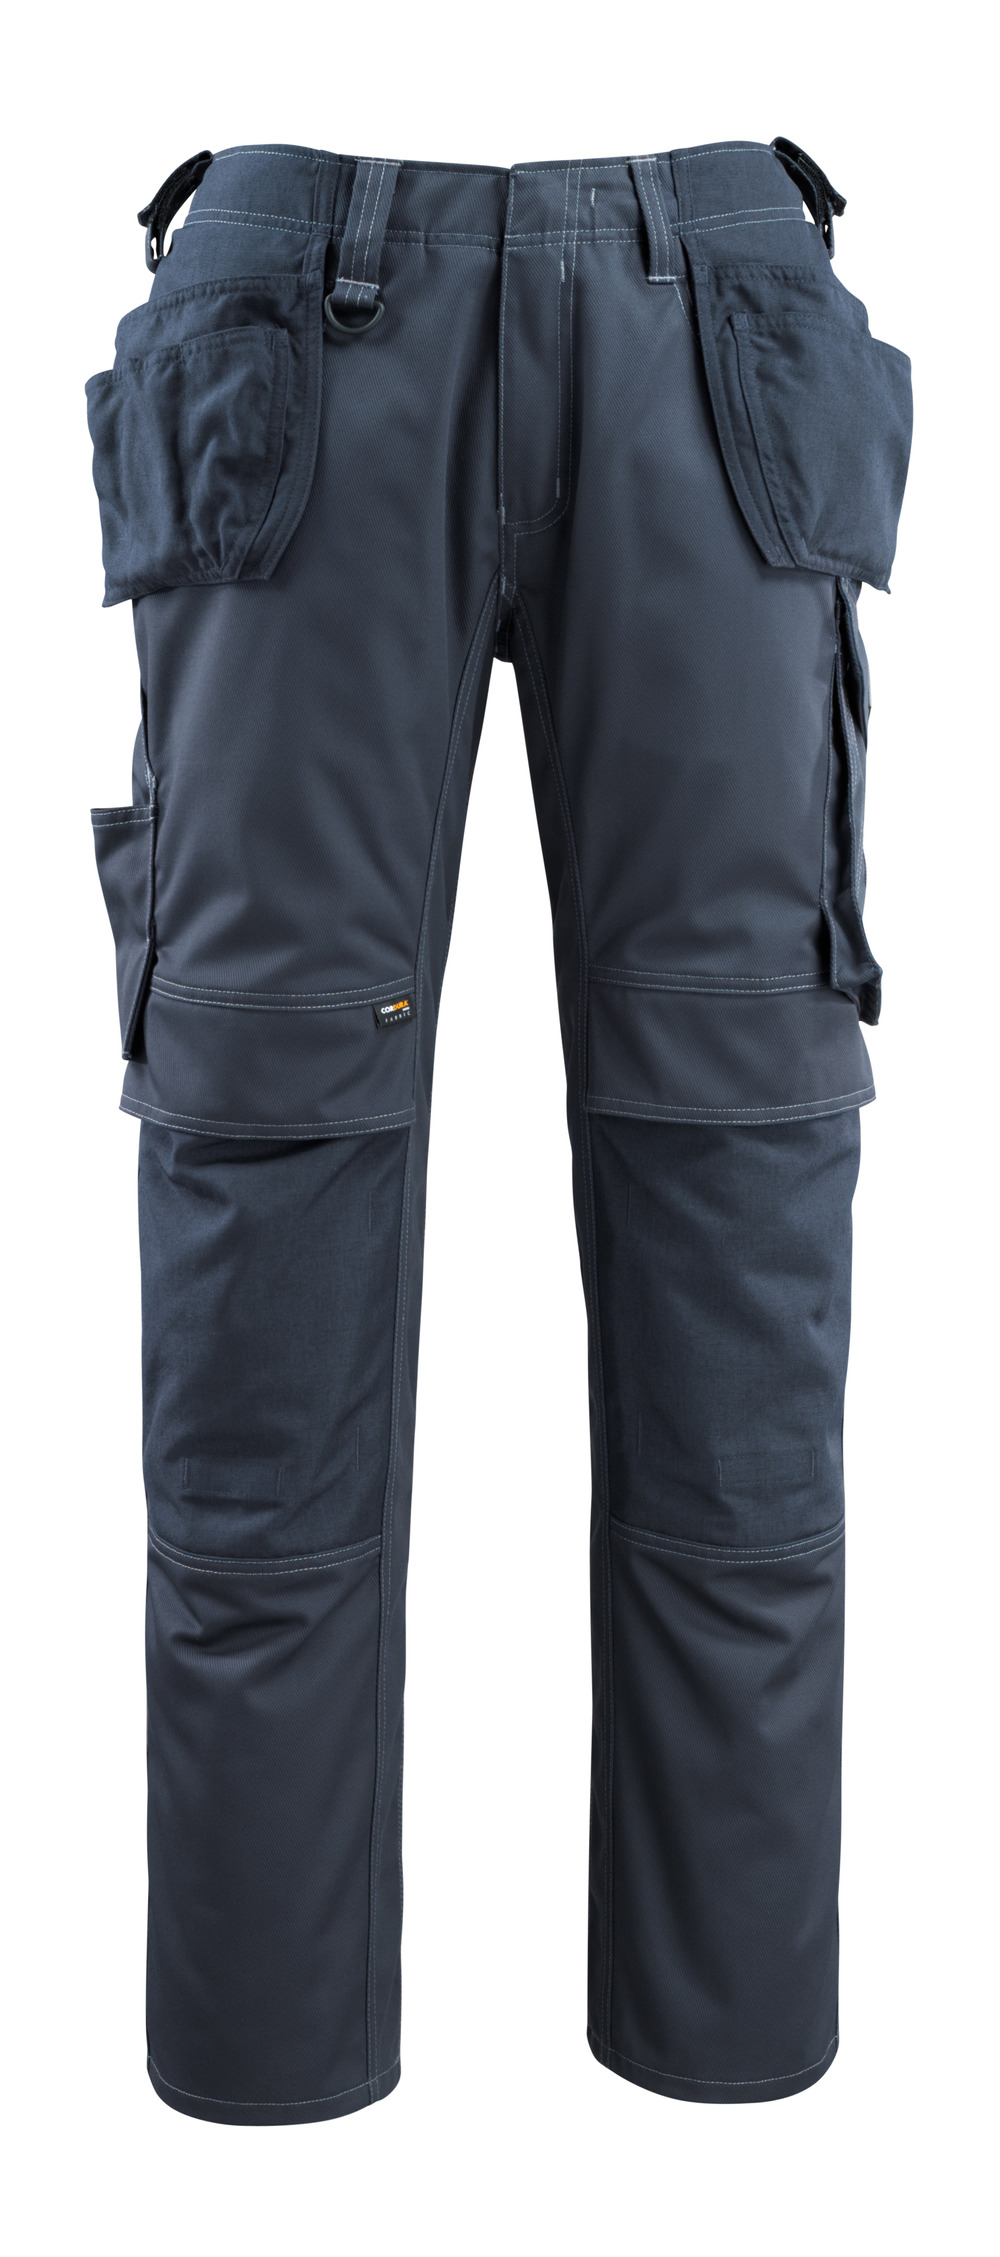 14131-203-010 Trousers with kneepad pockets and holster pockets - dark navy